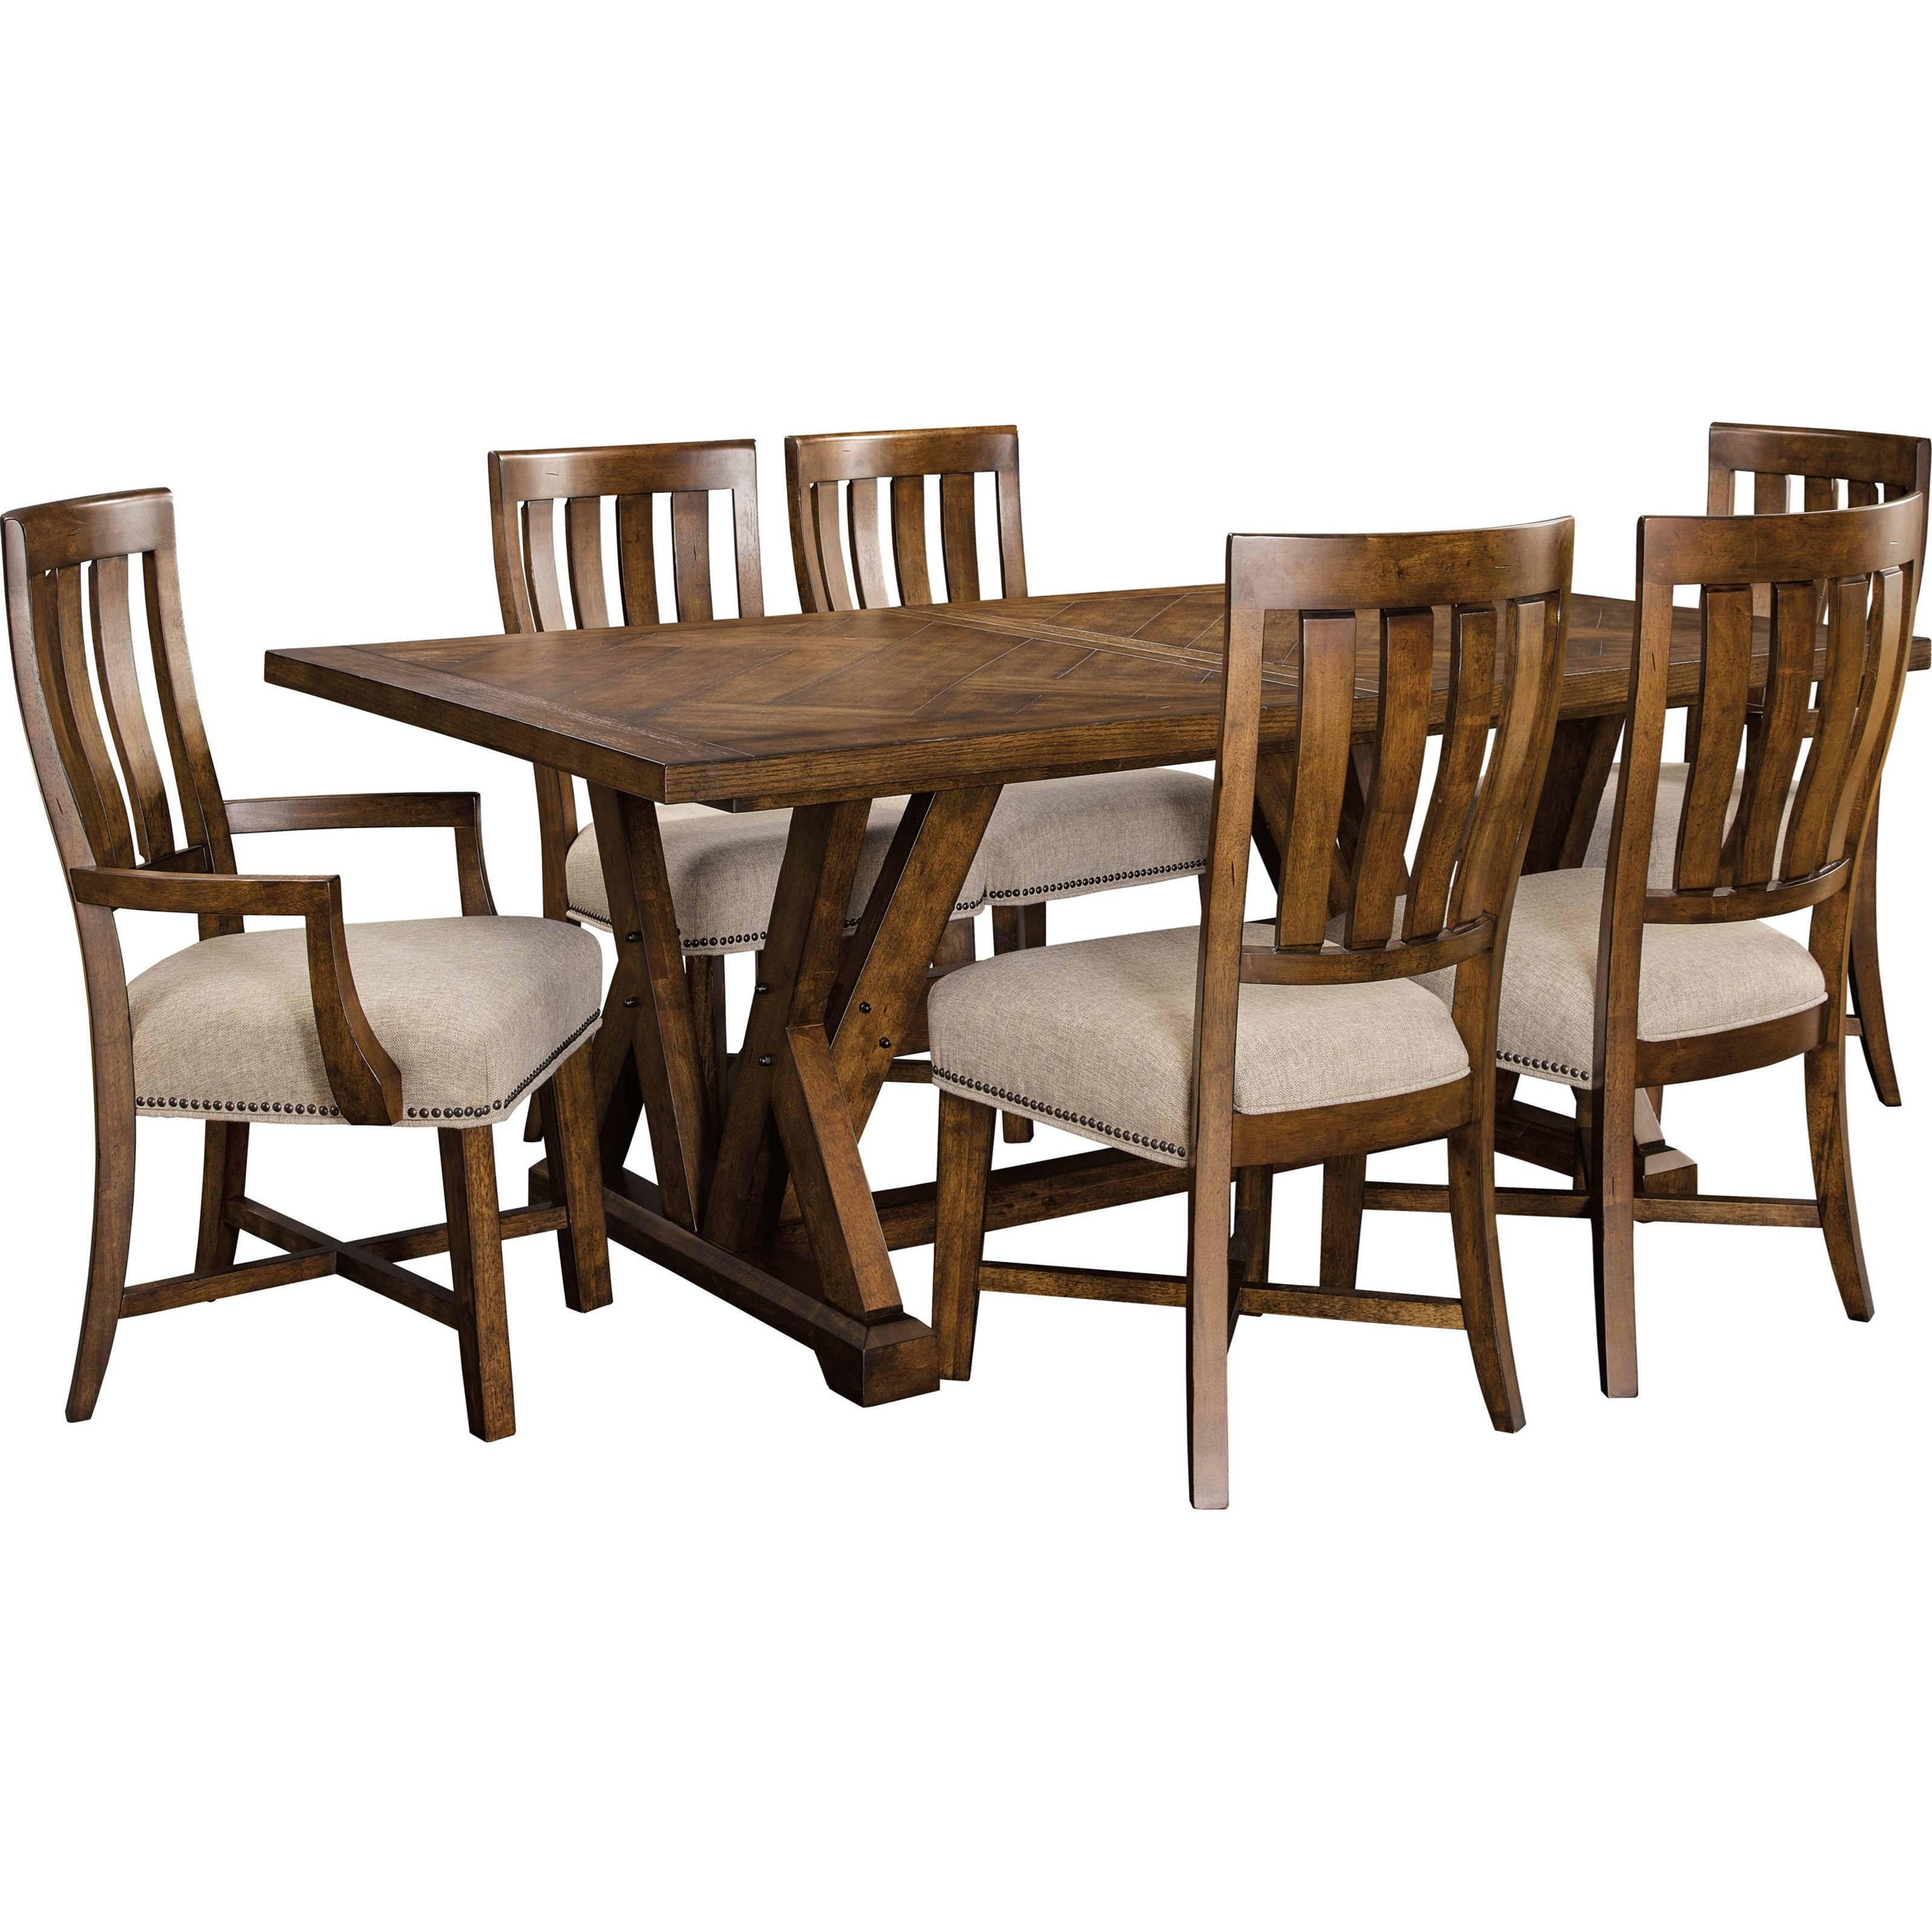 Broyhill Furniture Pieceworks7 Piece Table And Chair Set ...